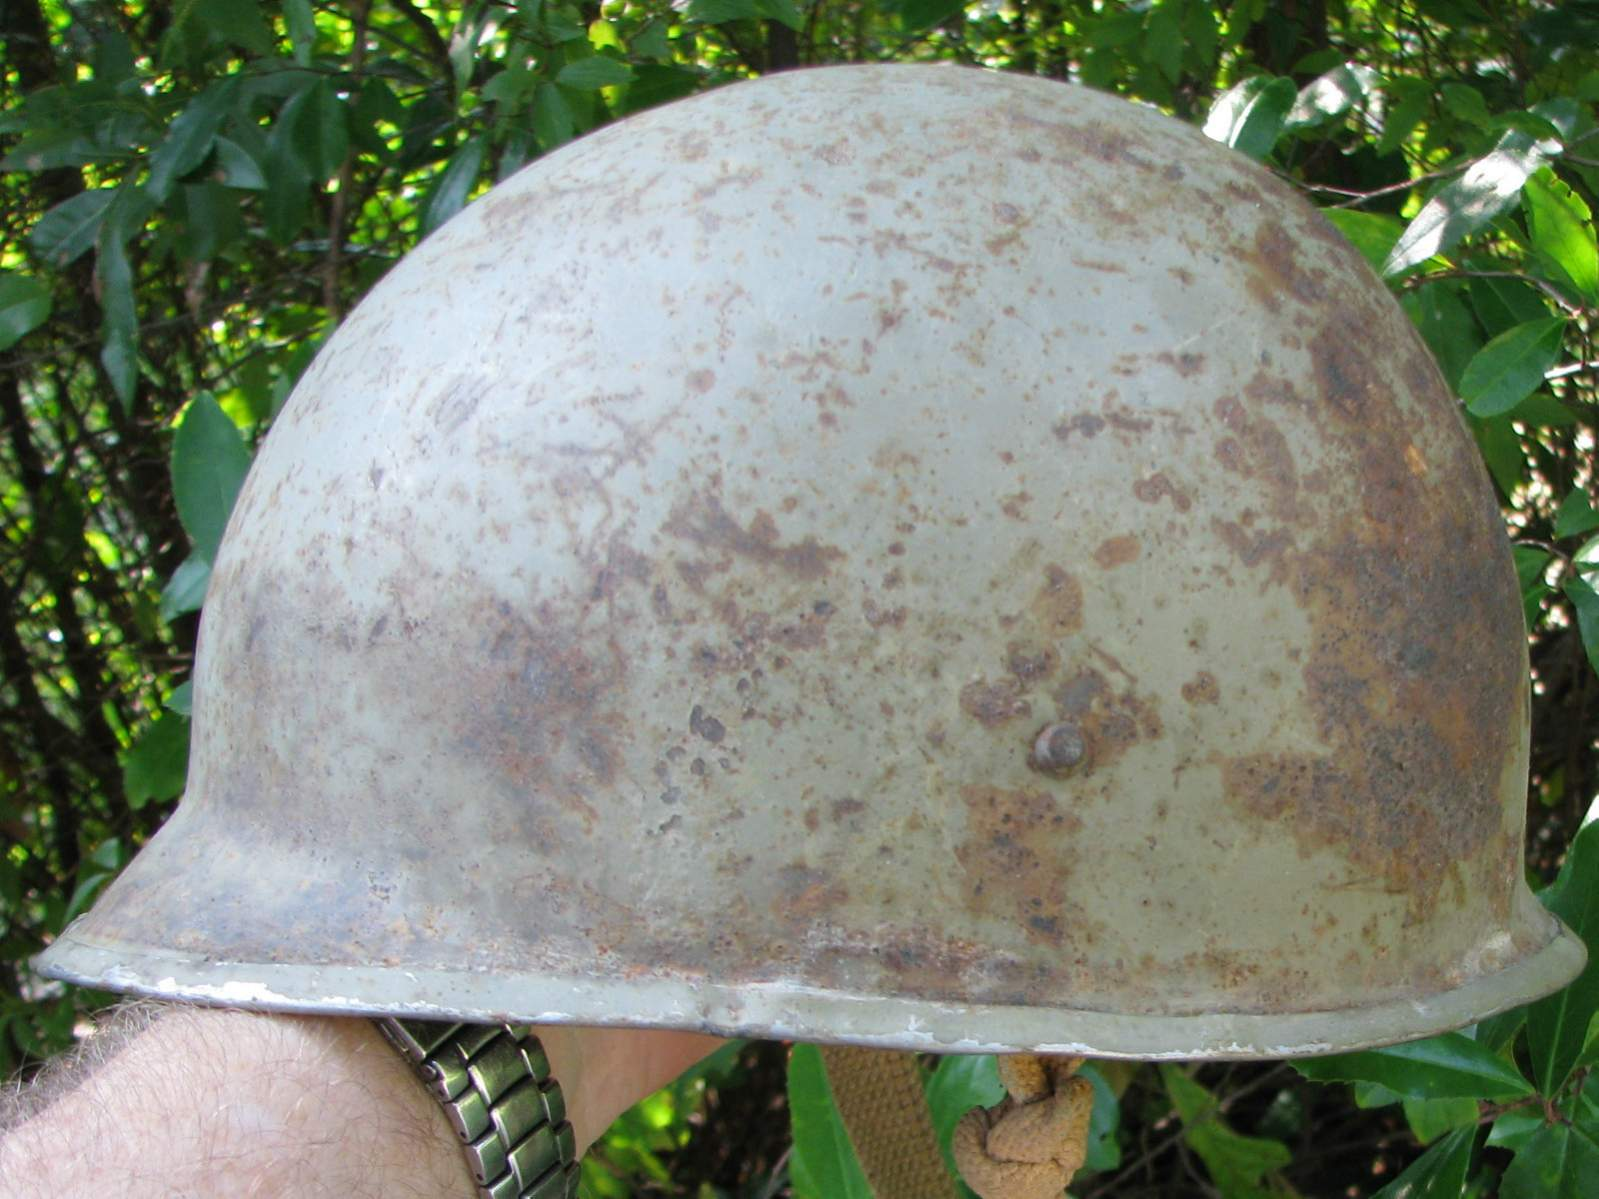 http://www.warrelics.eu/forum/attachments/world-steel-helmets/567325d1378915768-can-you-id-helmets-used-these-iranian-soldiers-60_57.jpg